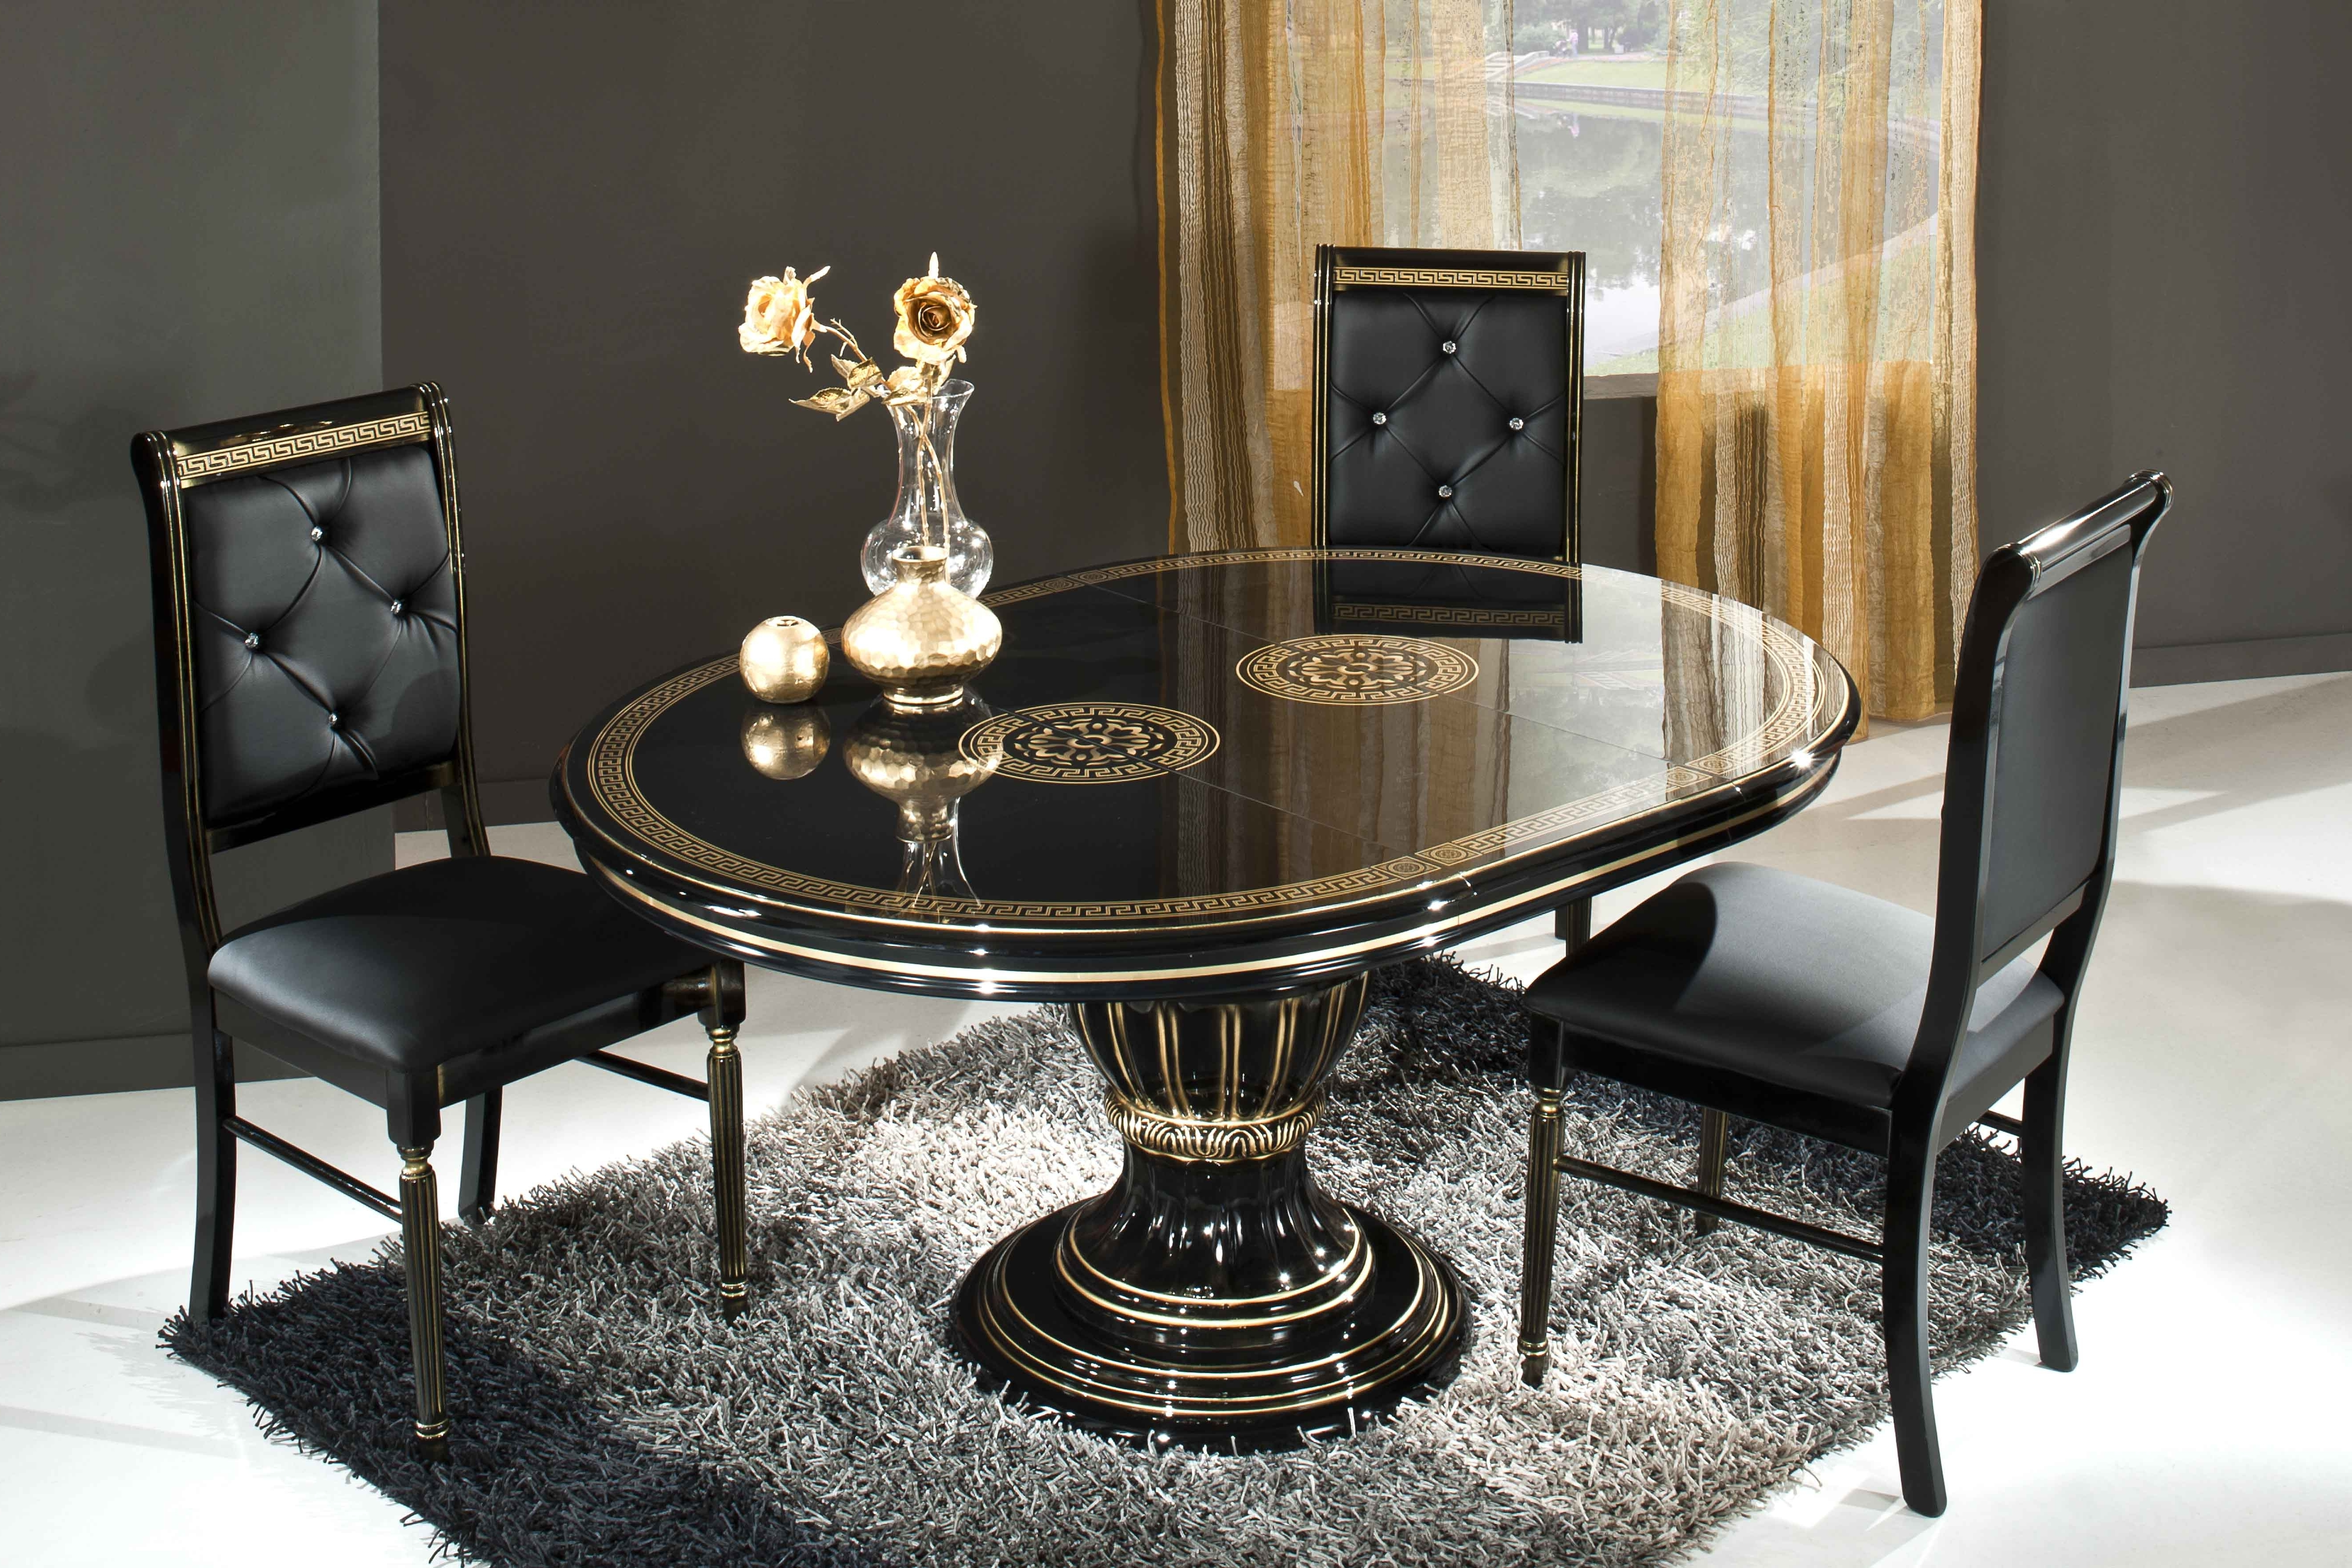 Black Extendable Dining Tables And Chairs Inside Most Recently Released Rosella Black Extending Dining Table With Chairs – Modish Furnishing (Gallery 2 of 25)